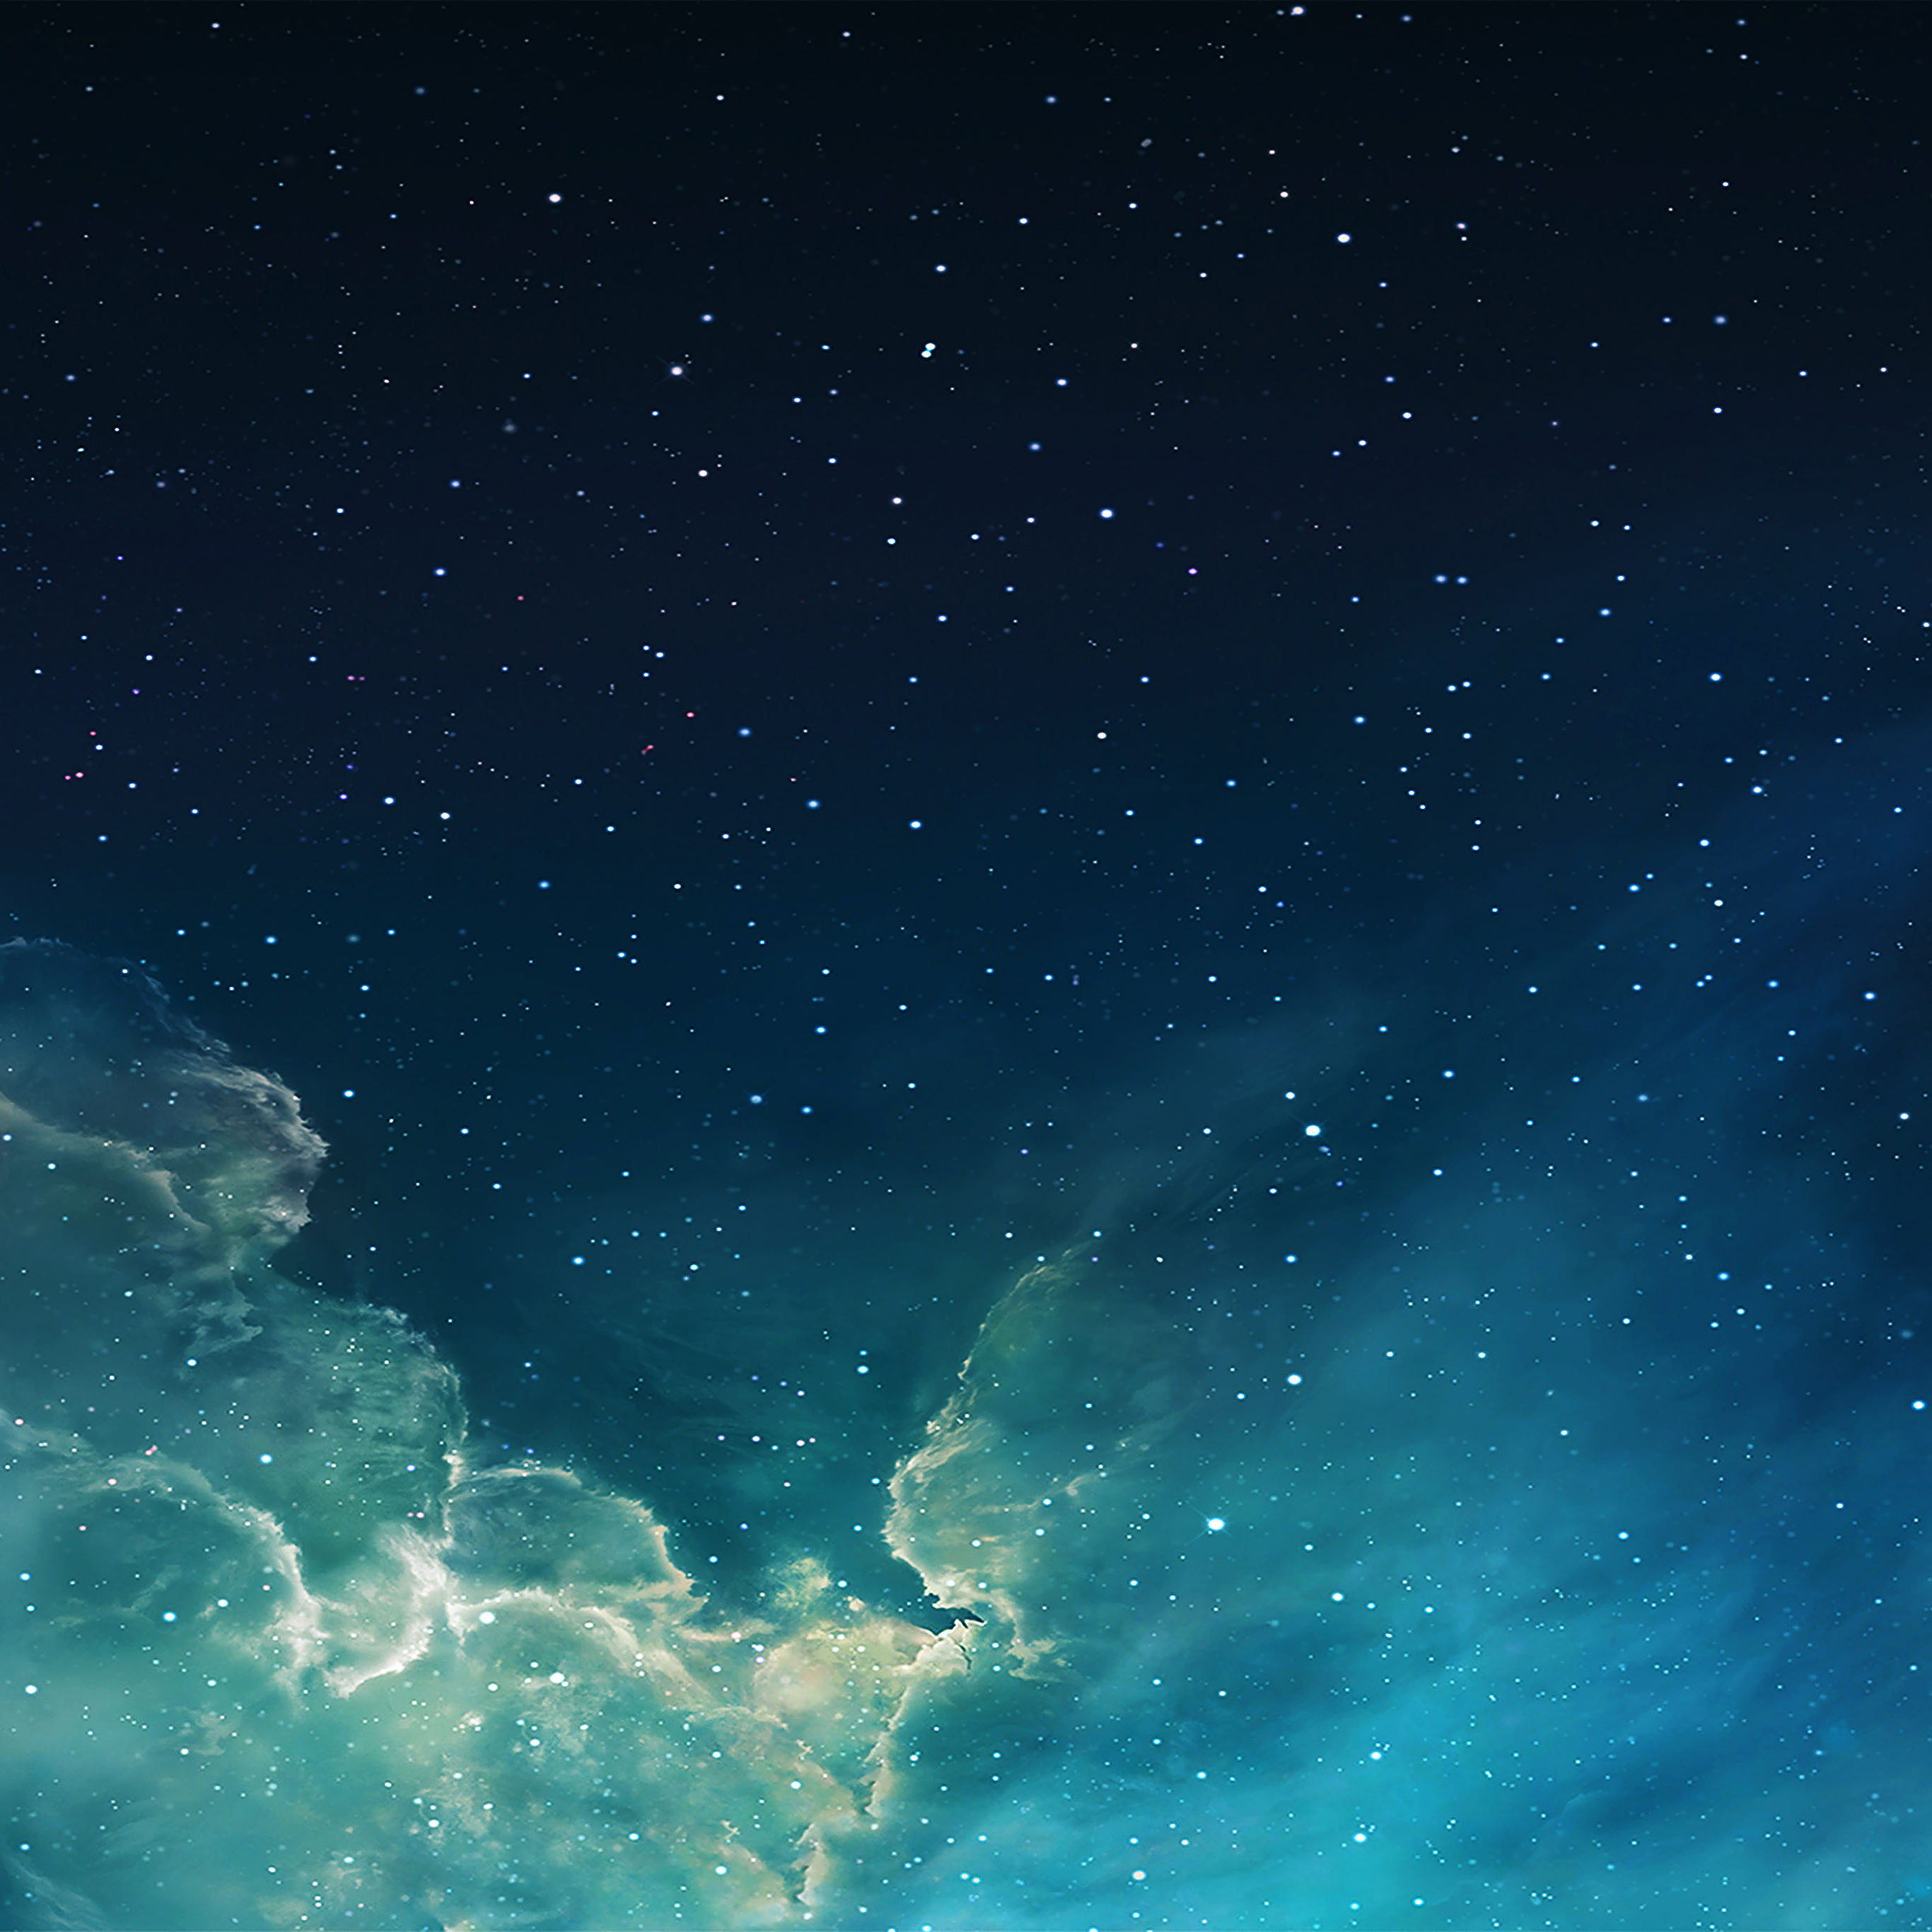 mc56-wallpaper-galaxy-blue-7-starry-star-sky-wallpaper